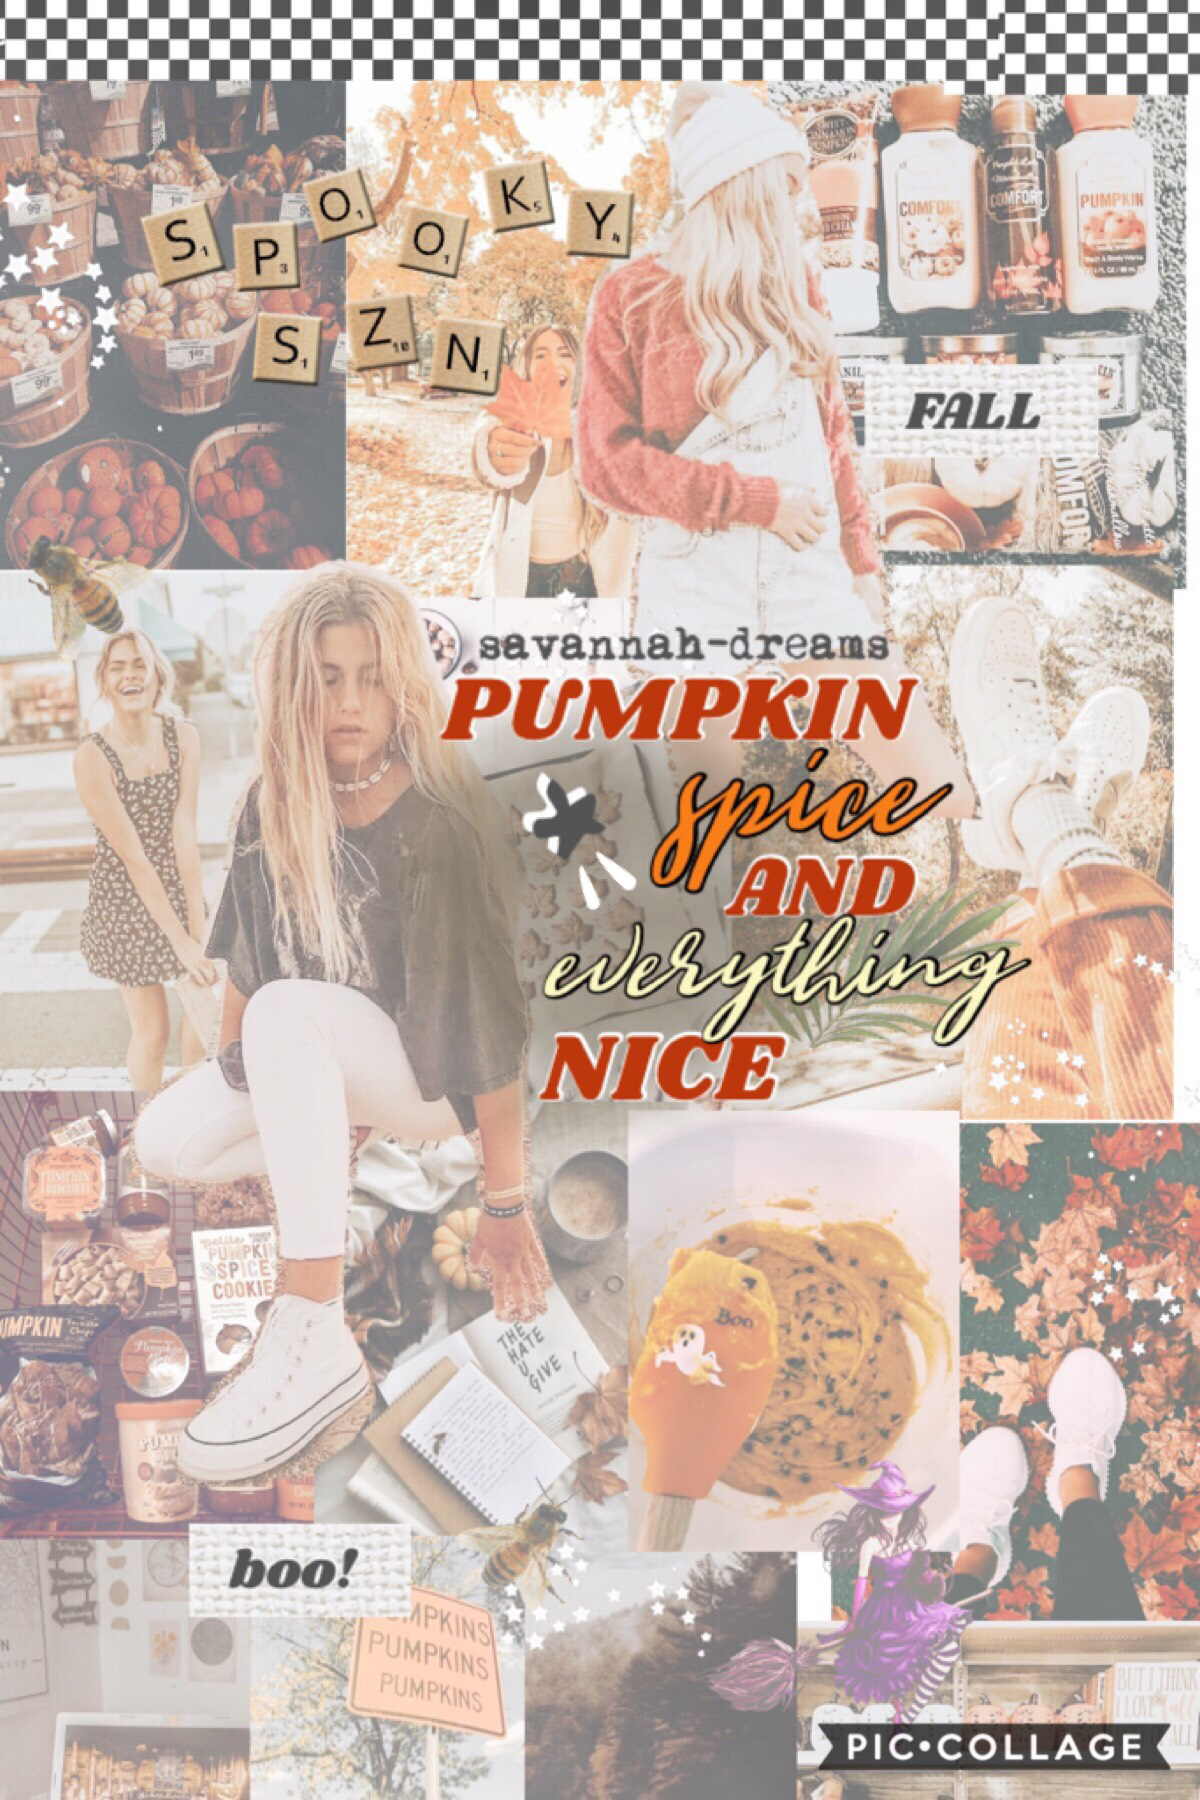 fall/halloween themed games entry 🐆🍂 inspired by enya's (@meandmeonly) latest post 🌾🐿 eee i actually really like this!! ✌🏼 what do y'all think?? ⚡️🍁